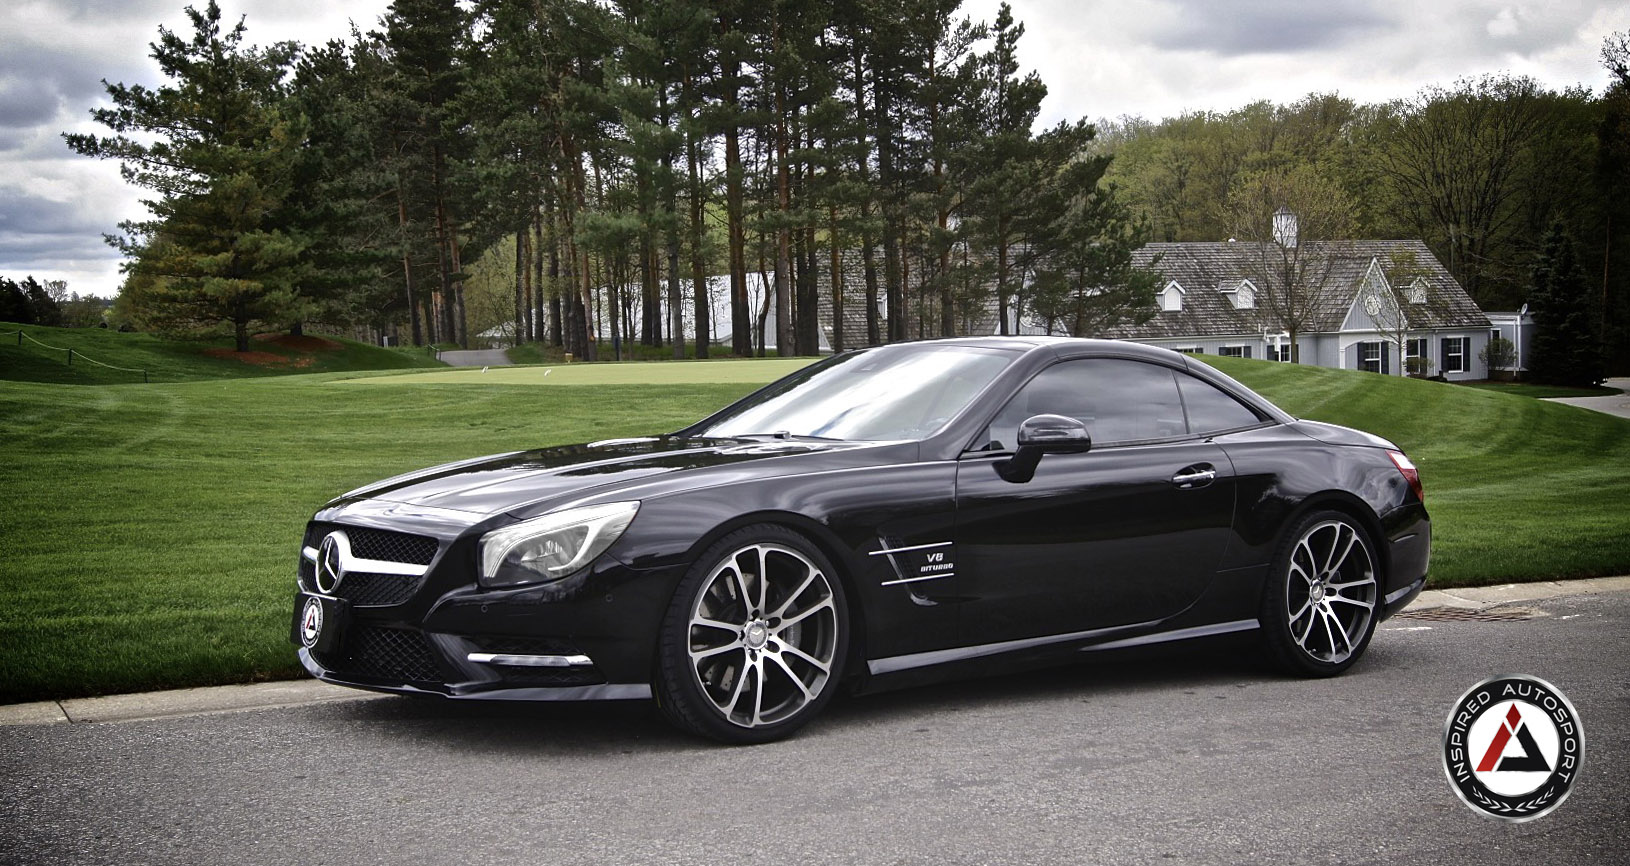 Fastest Car In The World Wallpaper 2013 Brabus Mercedes Benz Sl550 Enhanced By Inspired Autosport